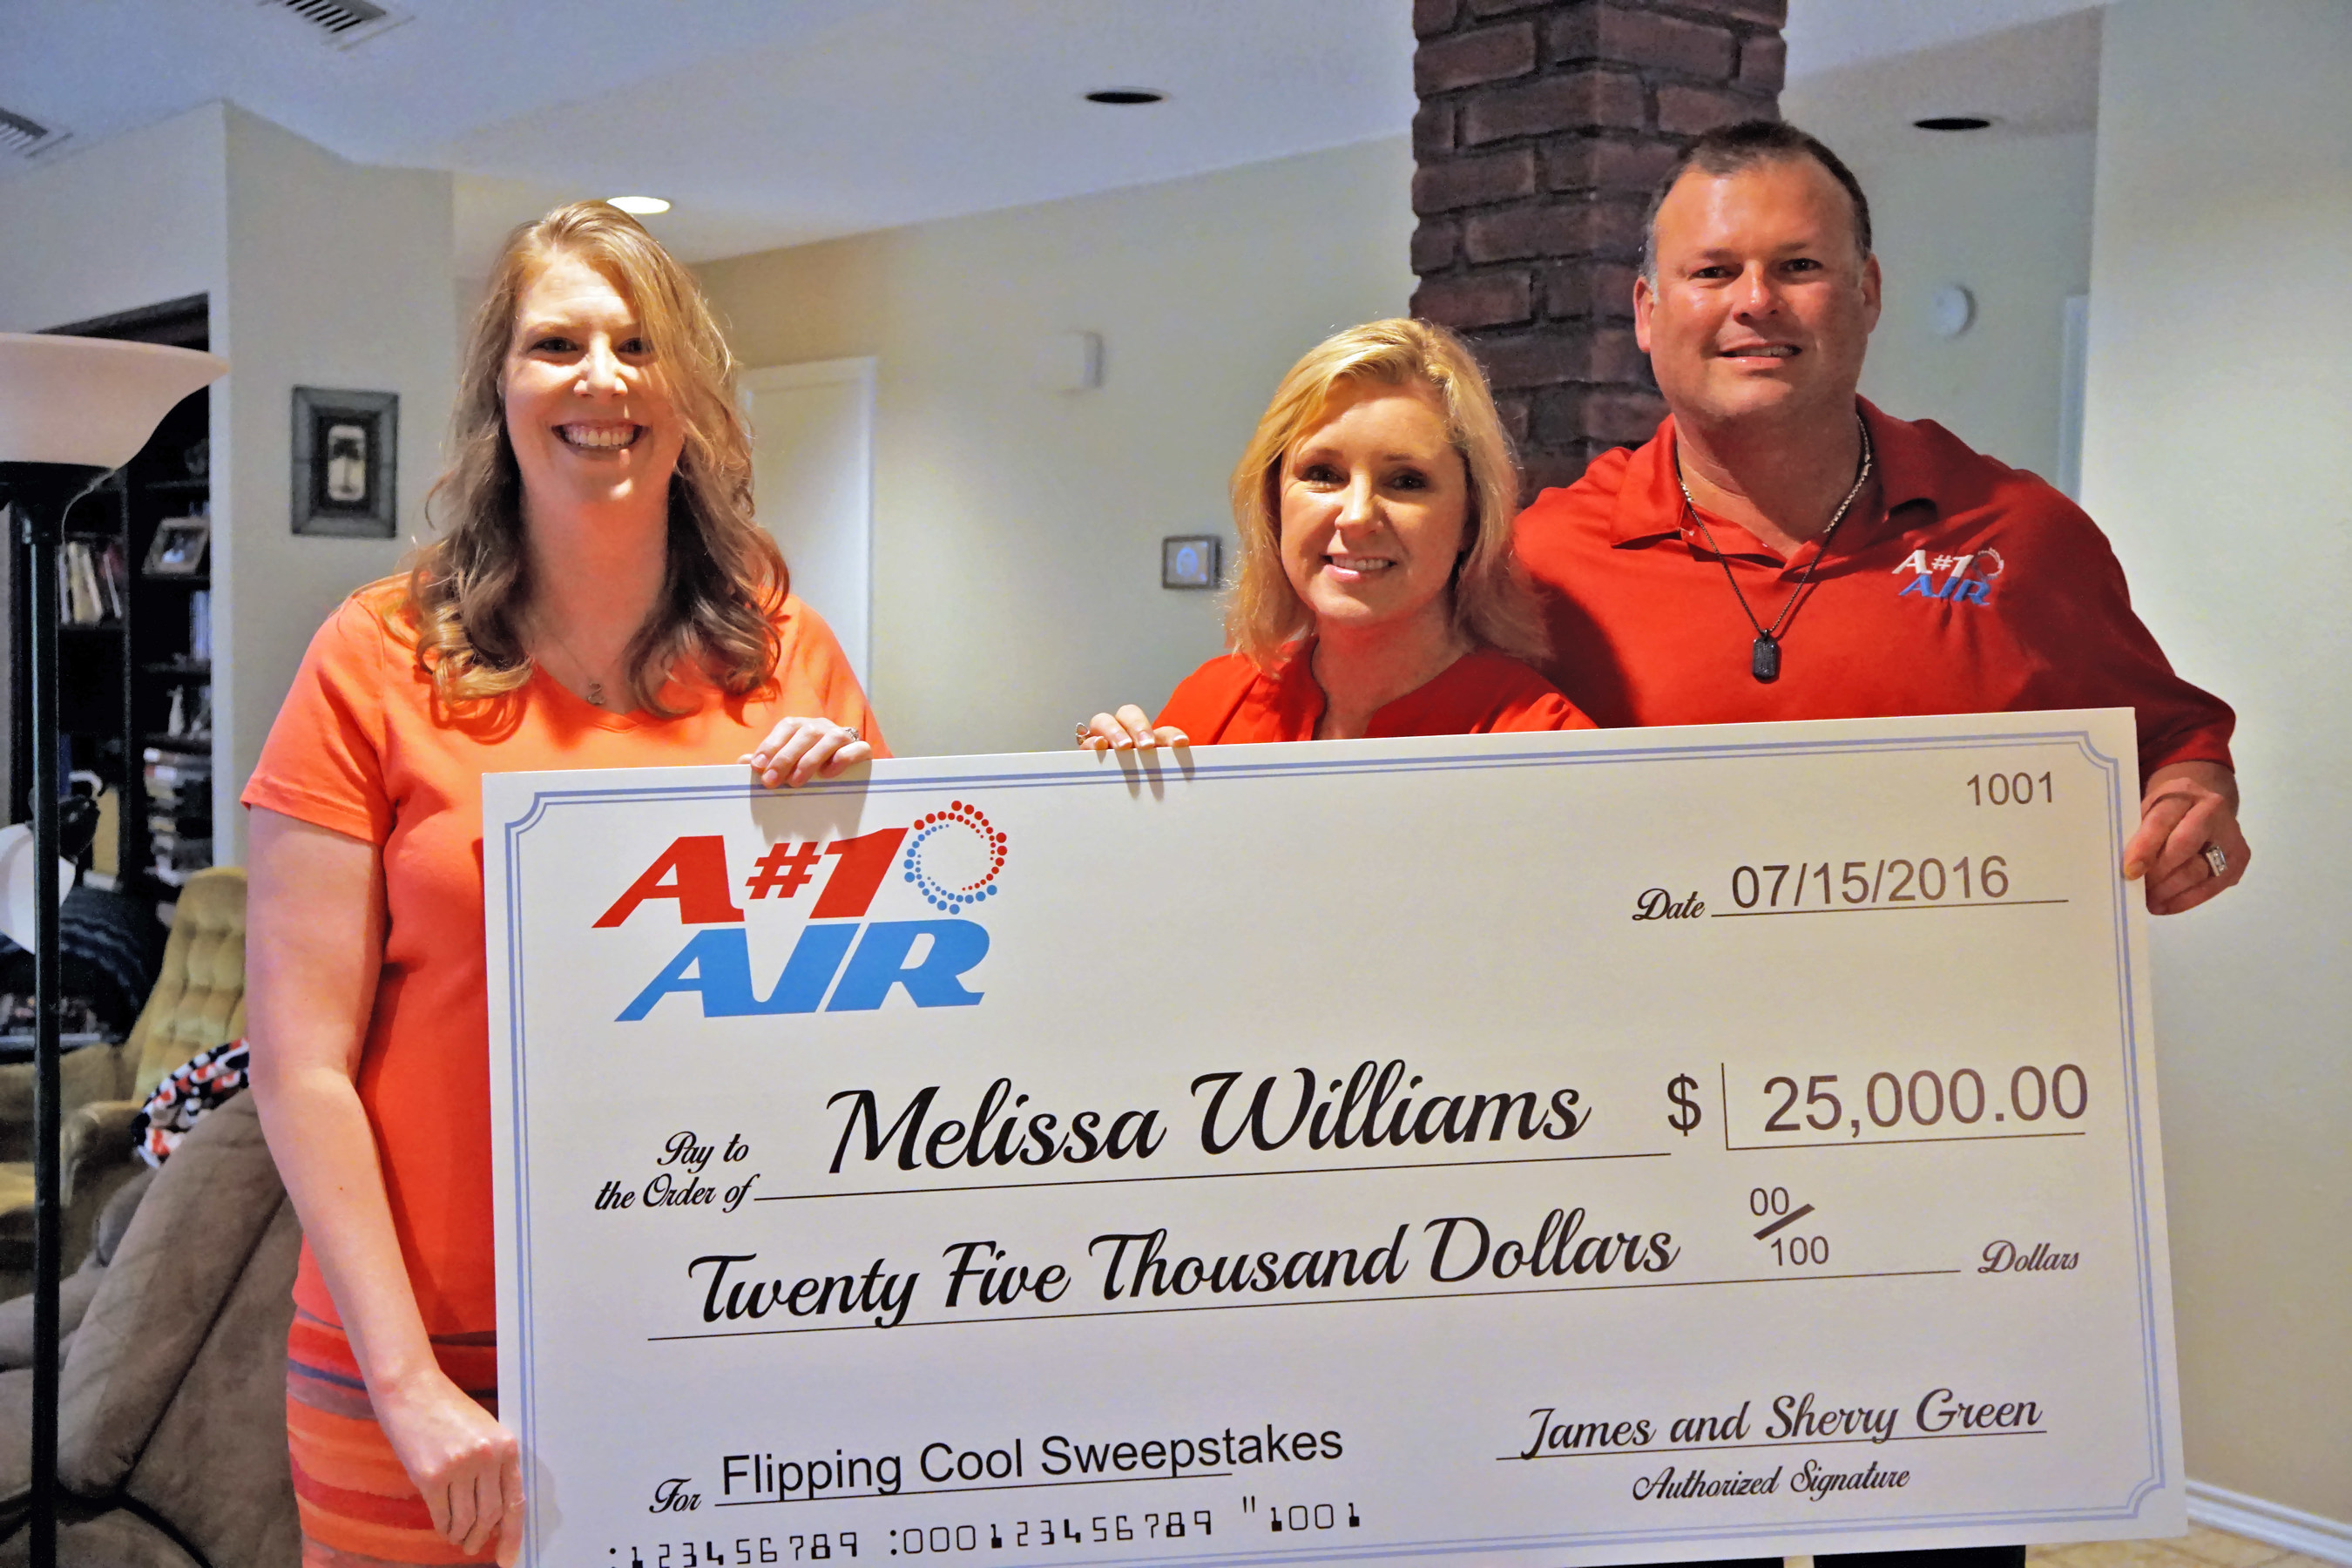 """A#1 Air owners Sherry and James Green present Melissa Williams, winner of the A#1 Air Flippin' Cool Sweepstakes, a $25,000 check. Other prizes she won include a top-of-the-line Lennox 25 SEER Signature Series a/c system, iComfort smart thermostat, tankless water heater, duct cleaning and more. The Flippin' Cool Sweepstakes were sponsored by A#1 Air, Richard Rawlings of the Discovery show """"Fast N' Loud"""" and Lennox. The new a/c system came just in time, as Melissa's was about to go out completely."""